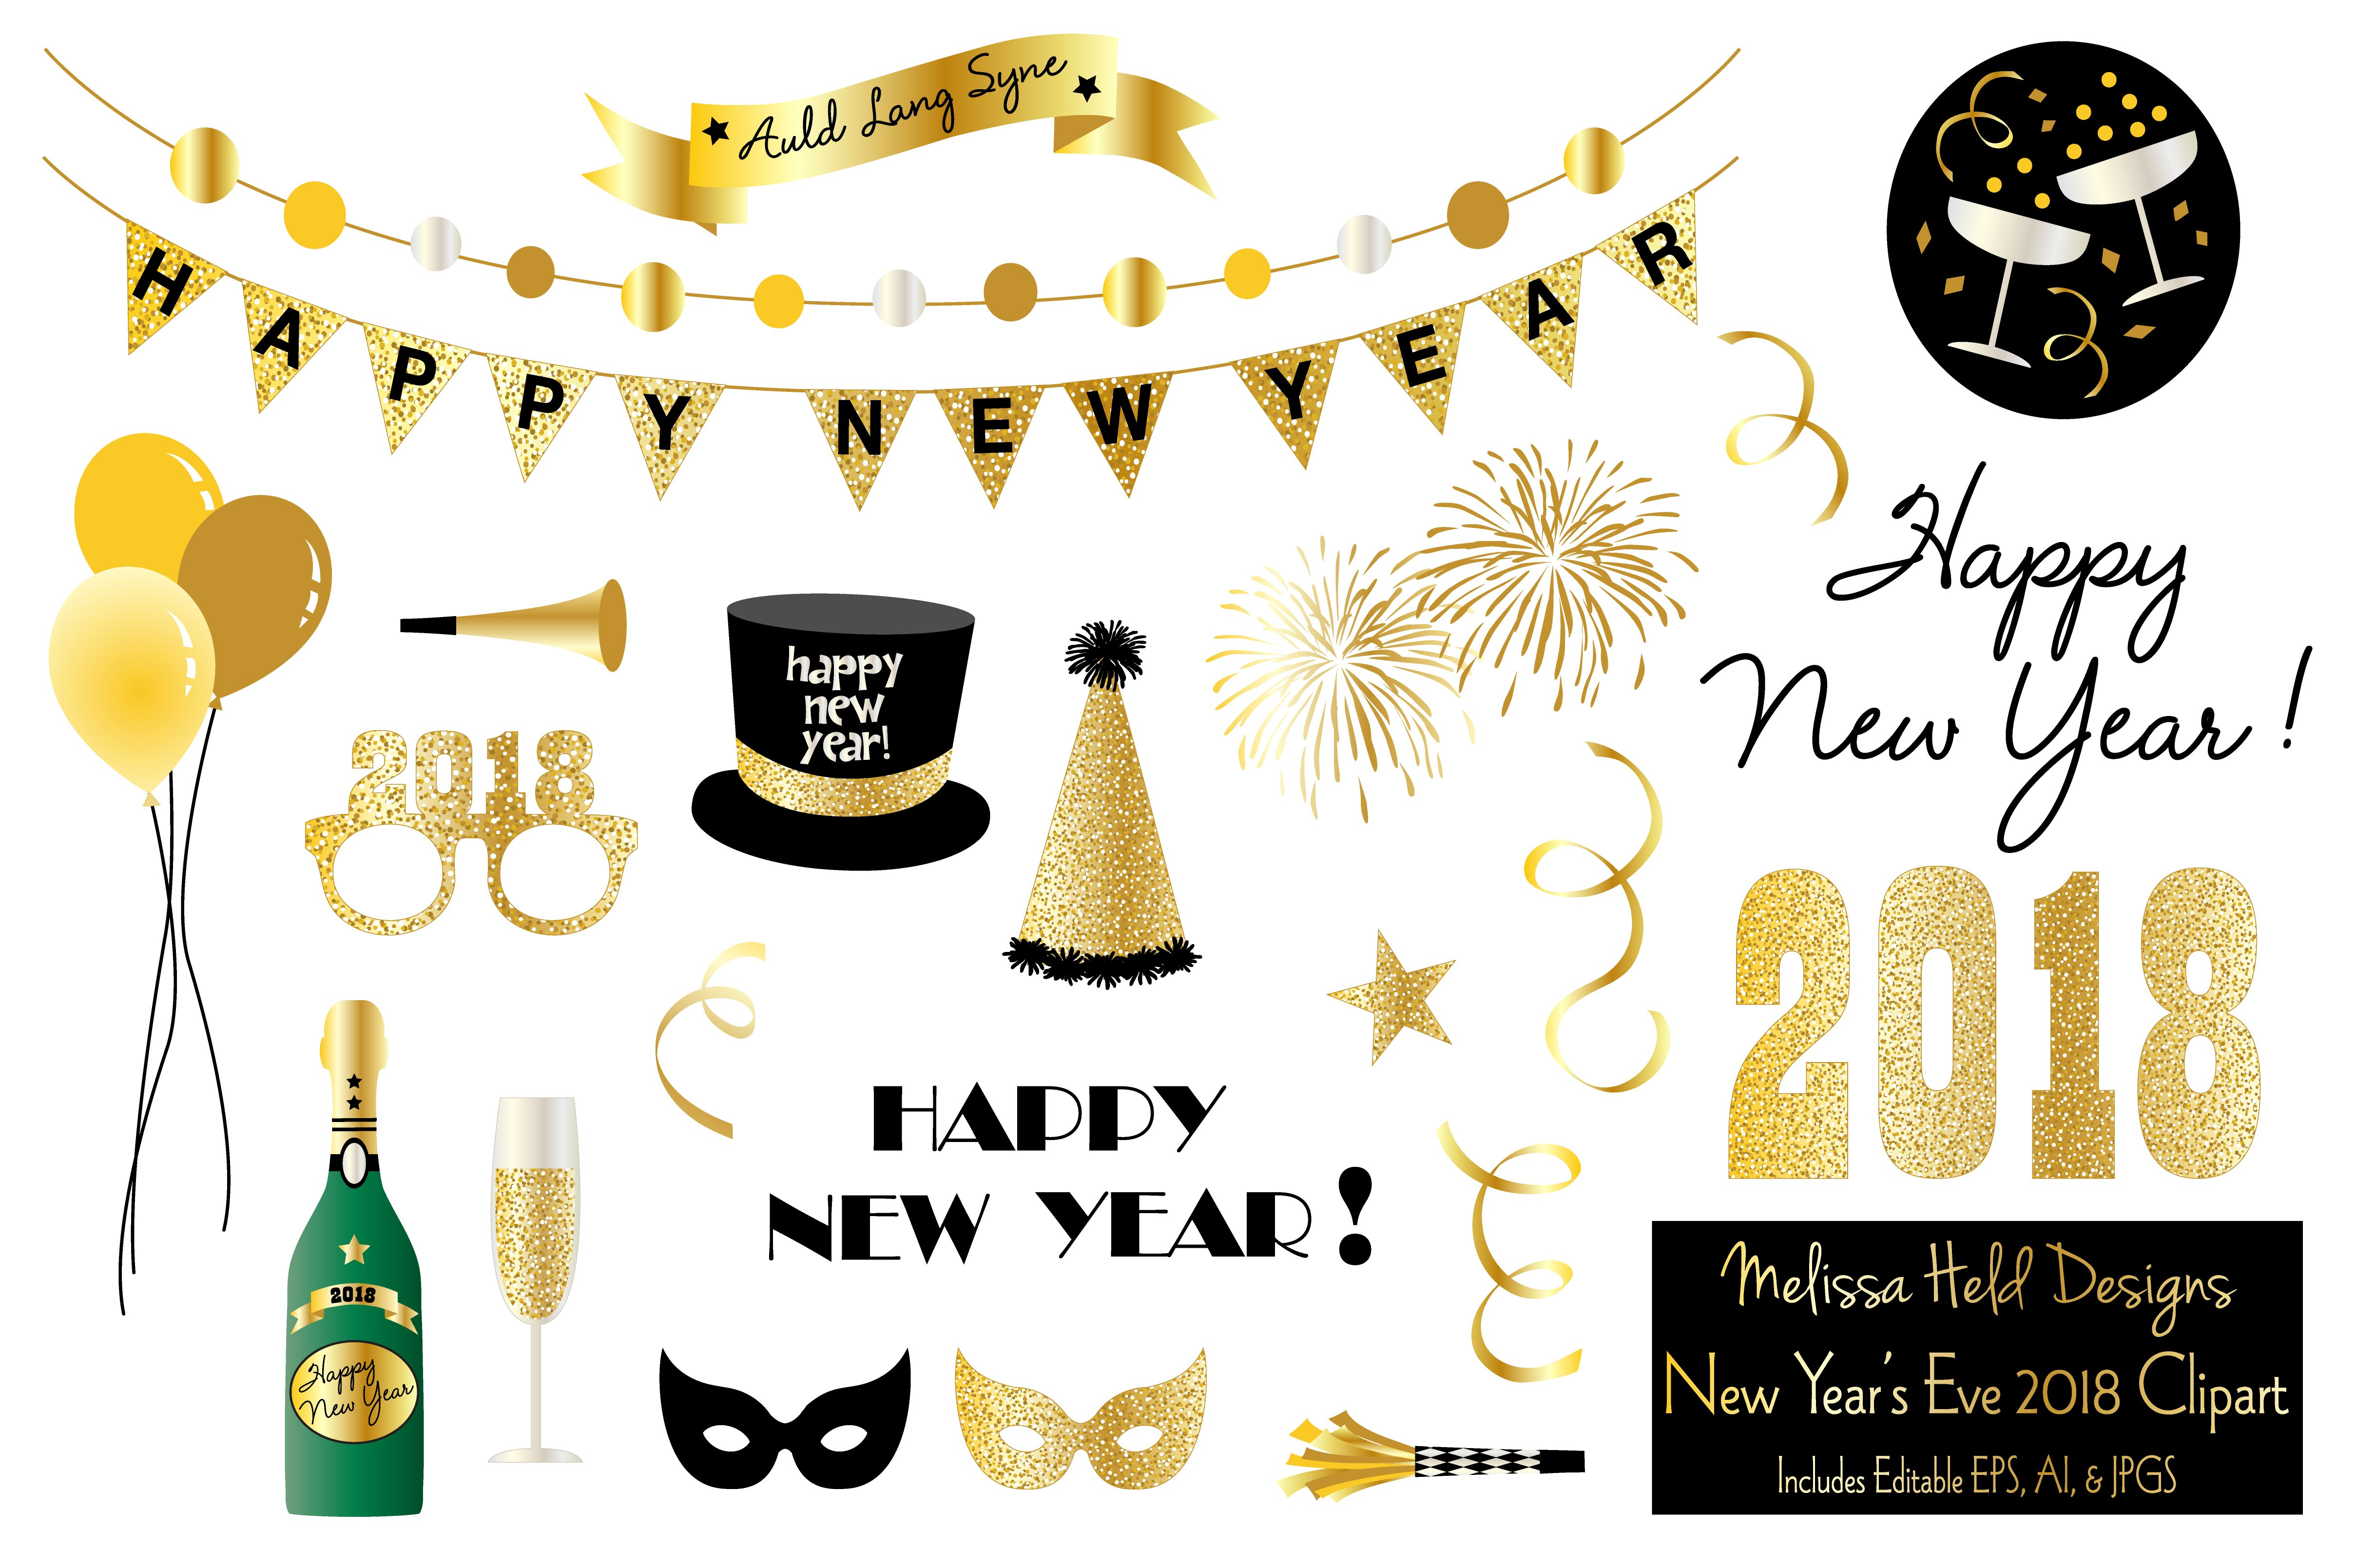 new years eve 2018 clipart illustrations creative market